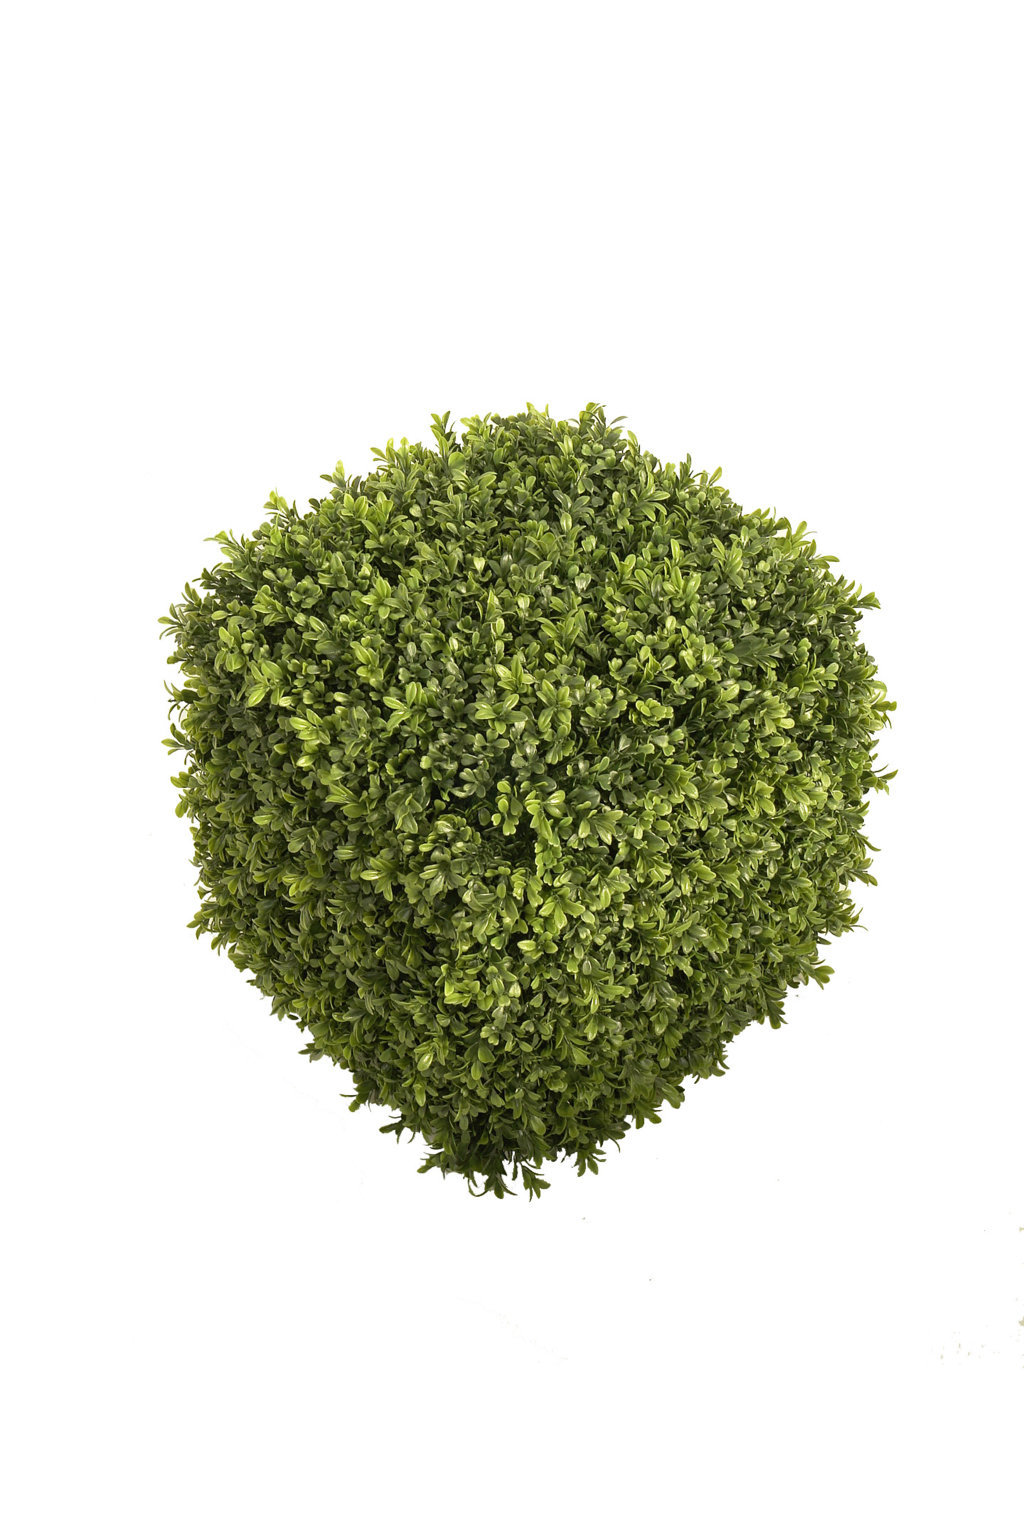 CUADRADO MINI BOXWOOD 40x40x40cm.